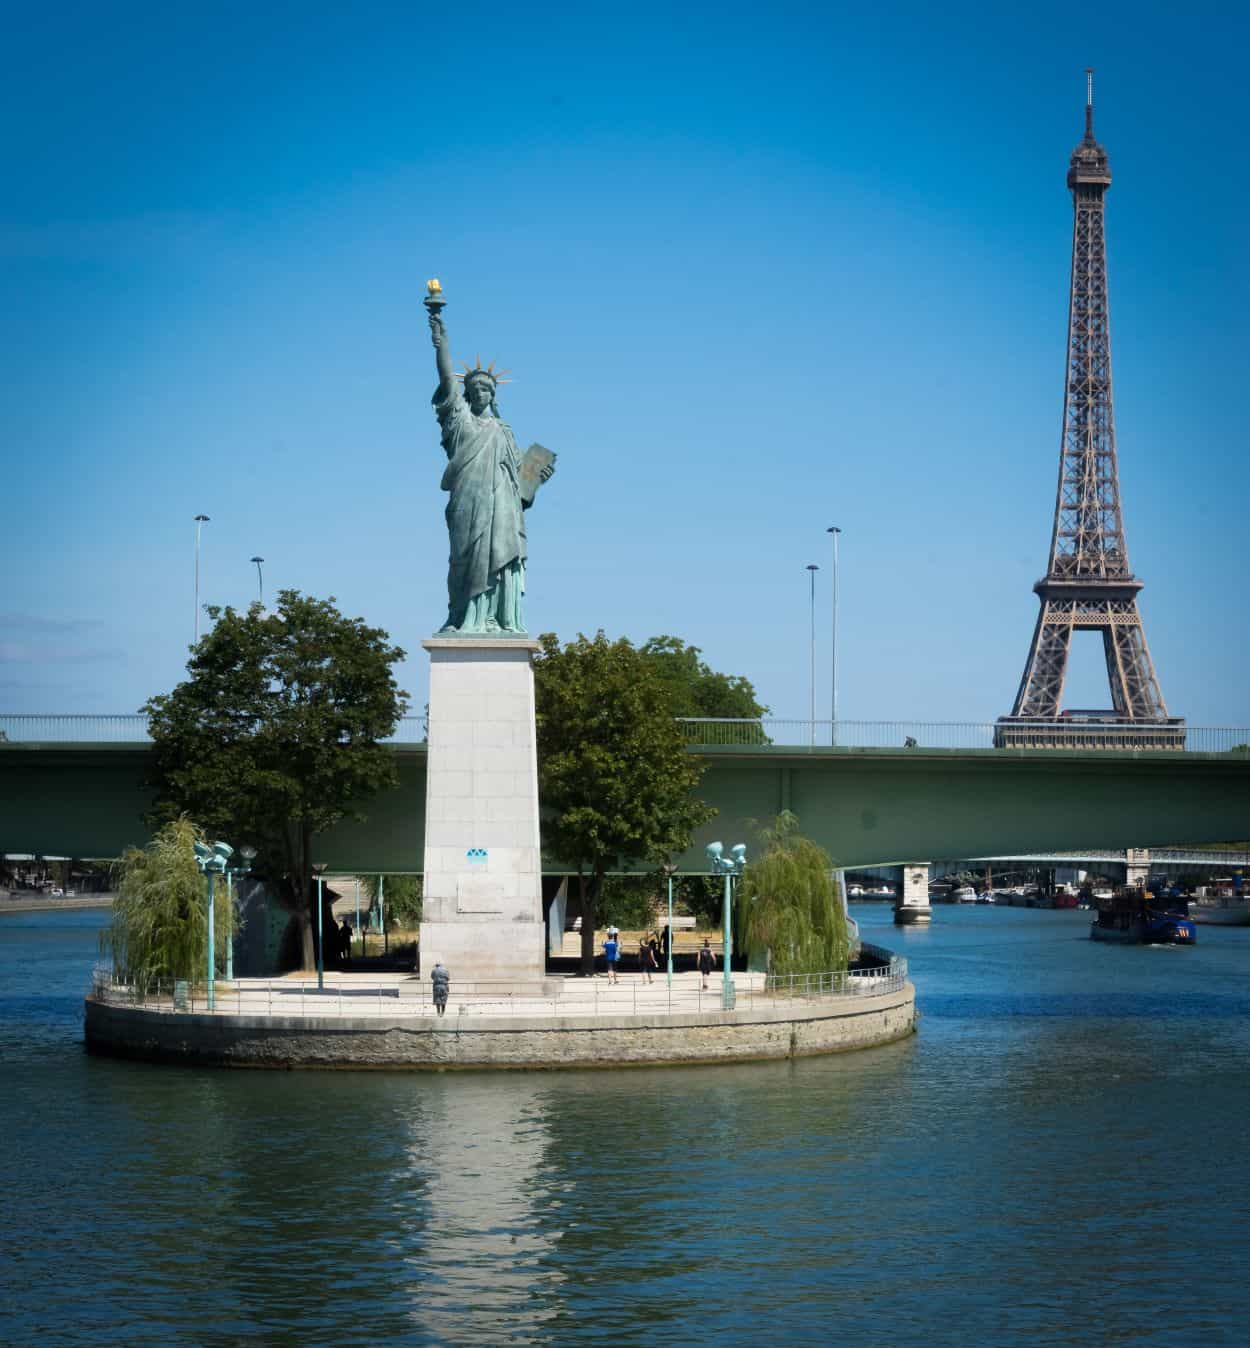 Statue of Liberty replica with Eiffel Tower in the background